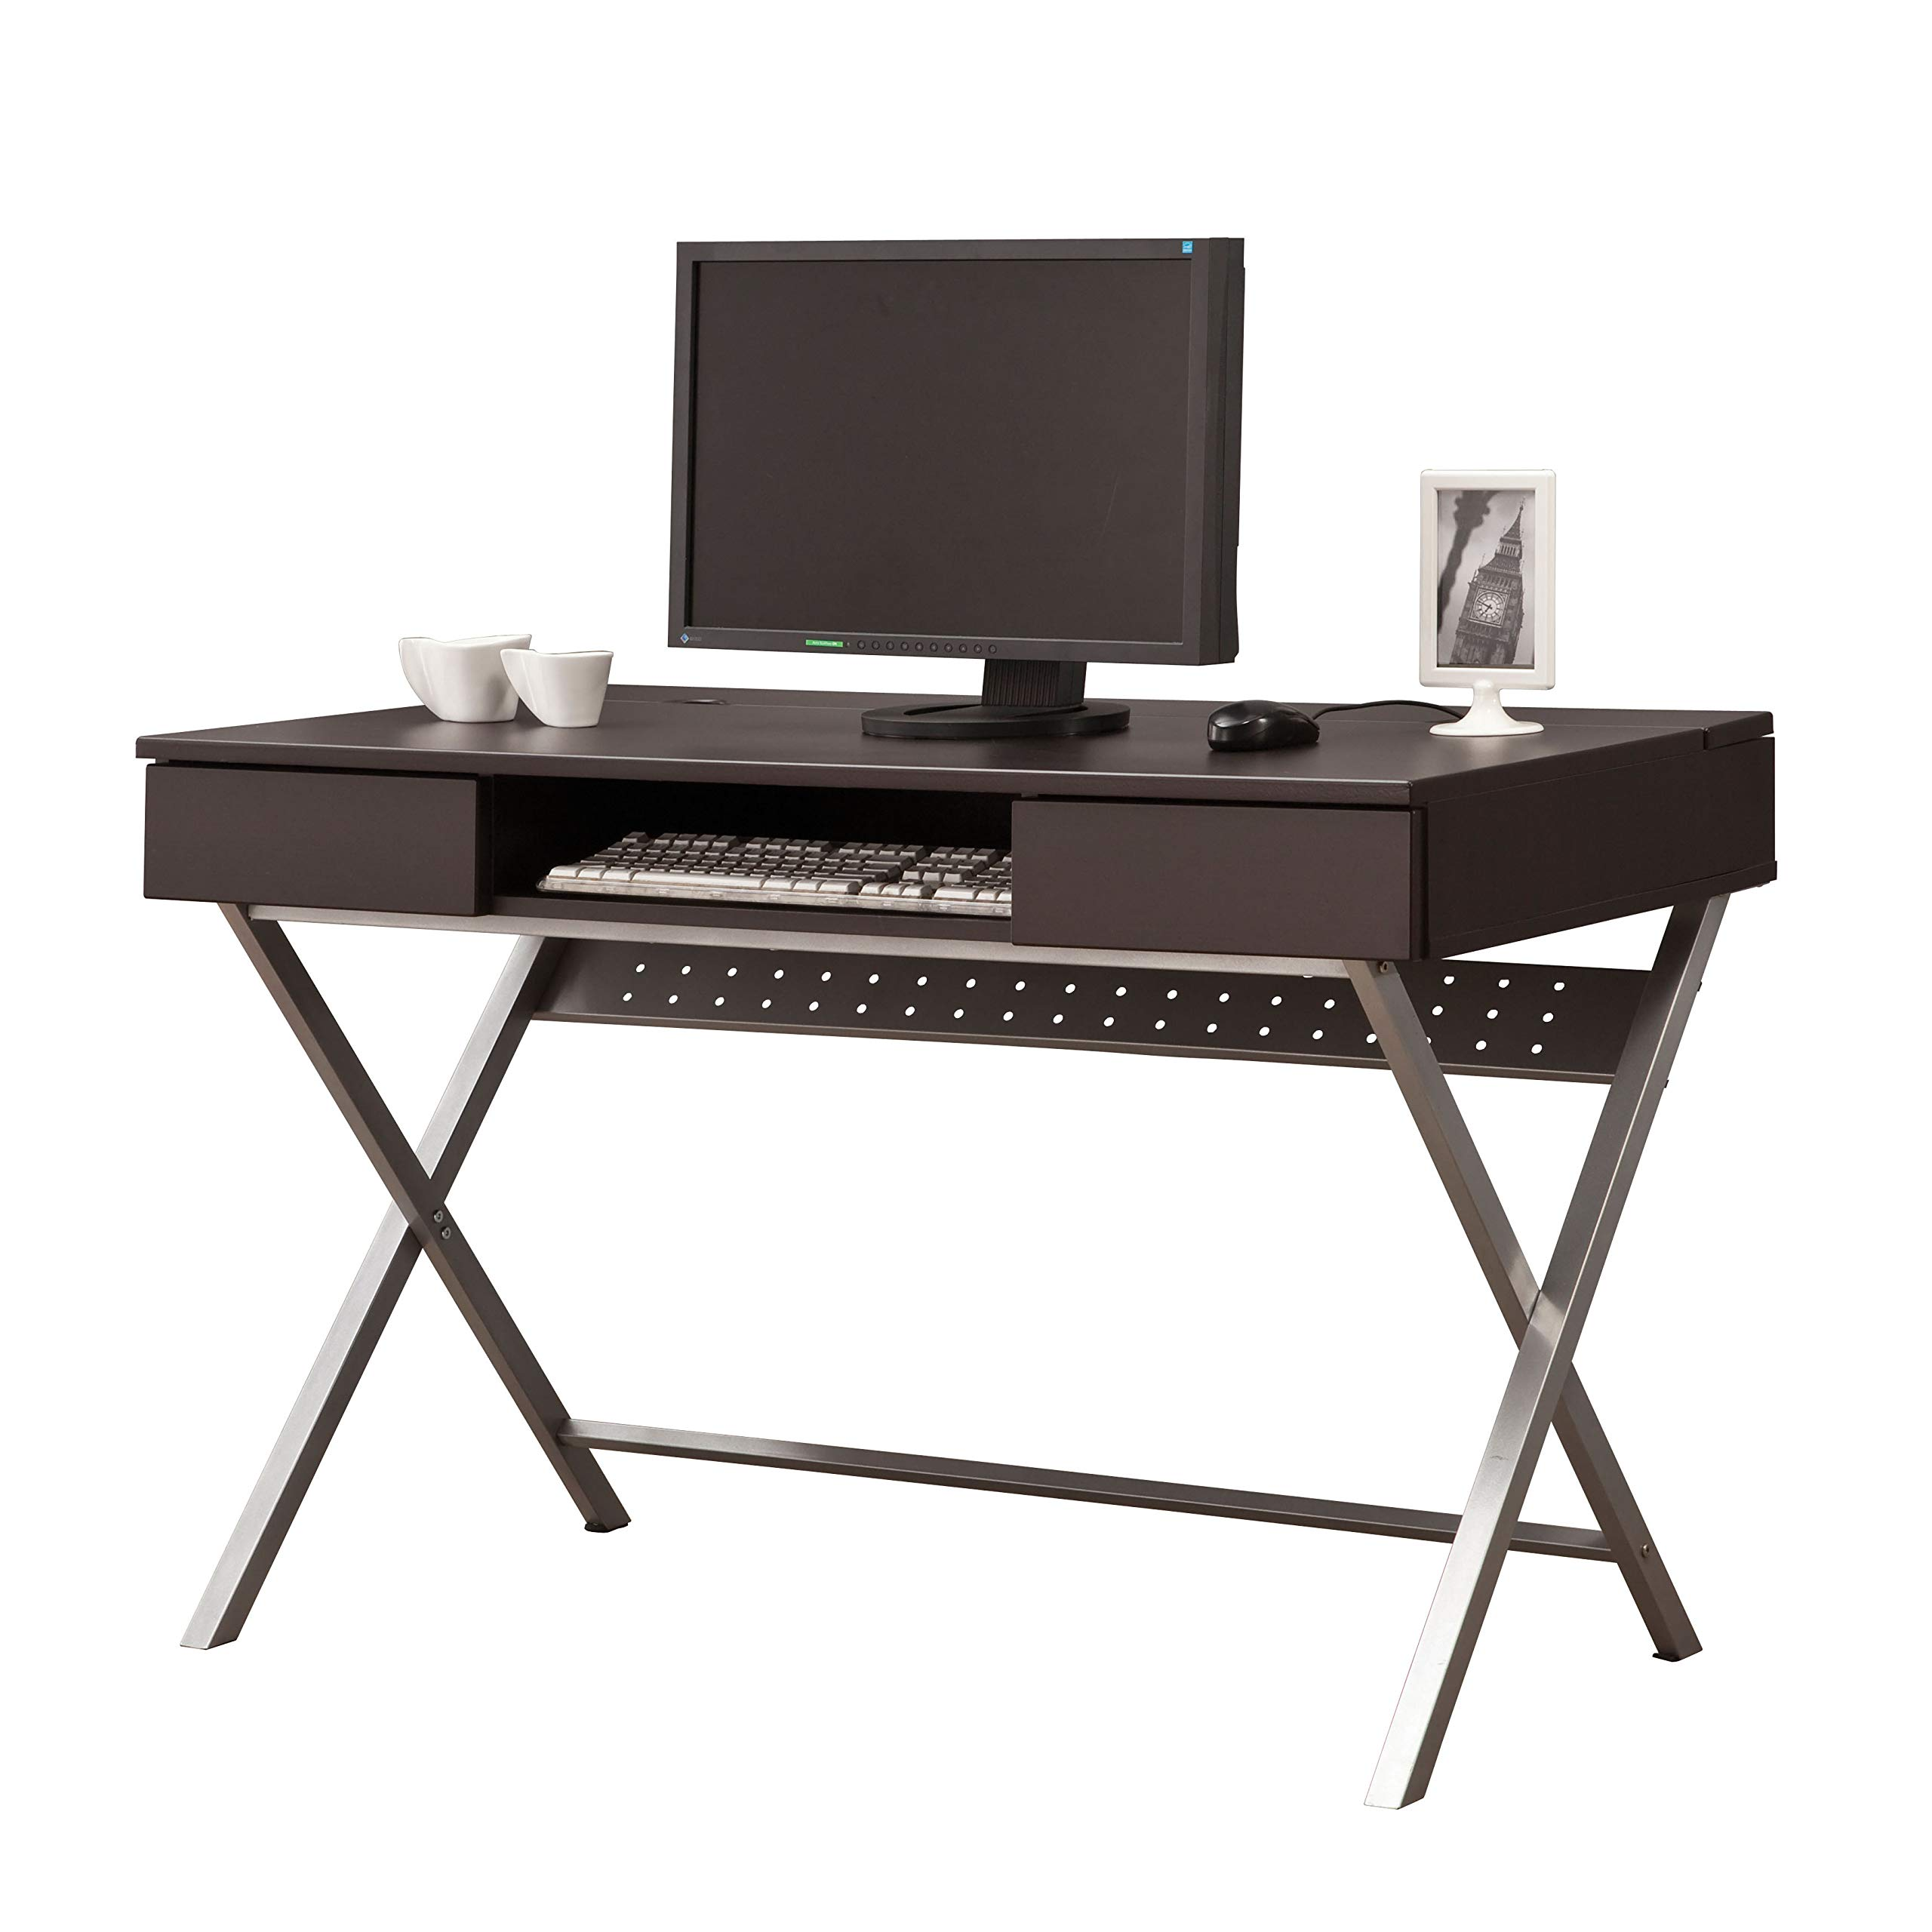 Coaster Home Furnishings Connect-It Writing Desk with Built-in Outlet/Storage Compartment Cappuccino by Coaster Home Furnishings